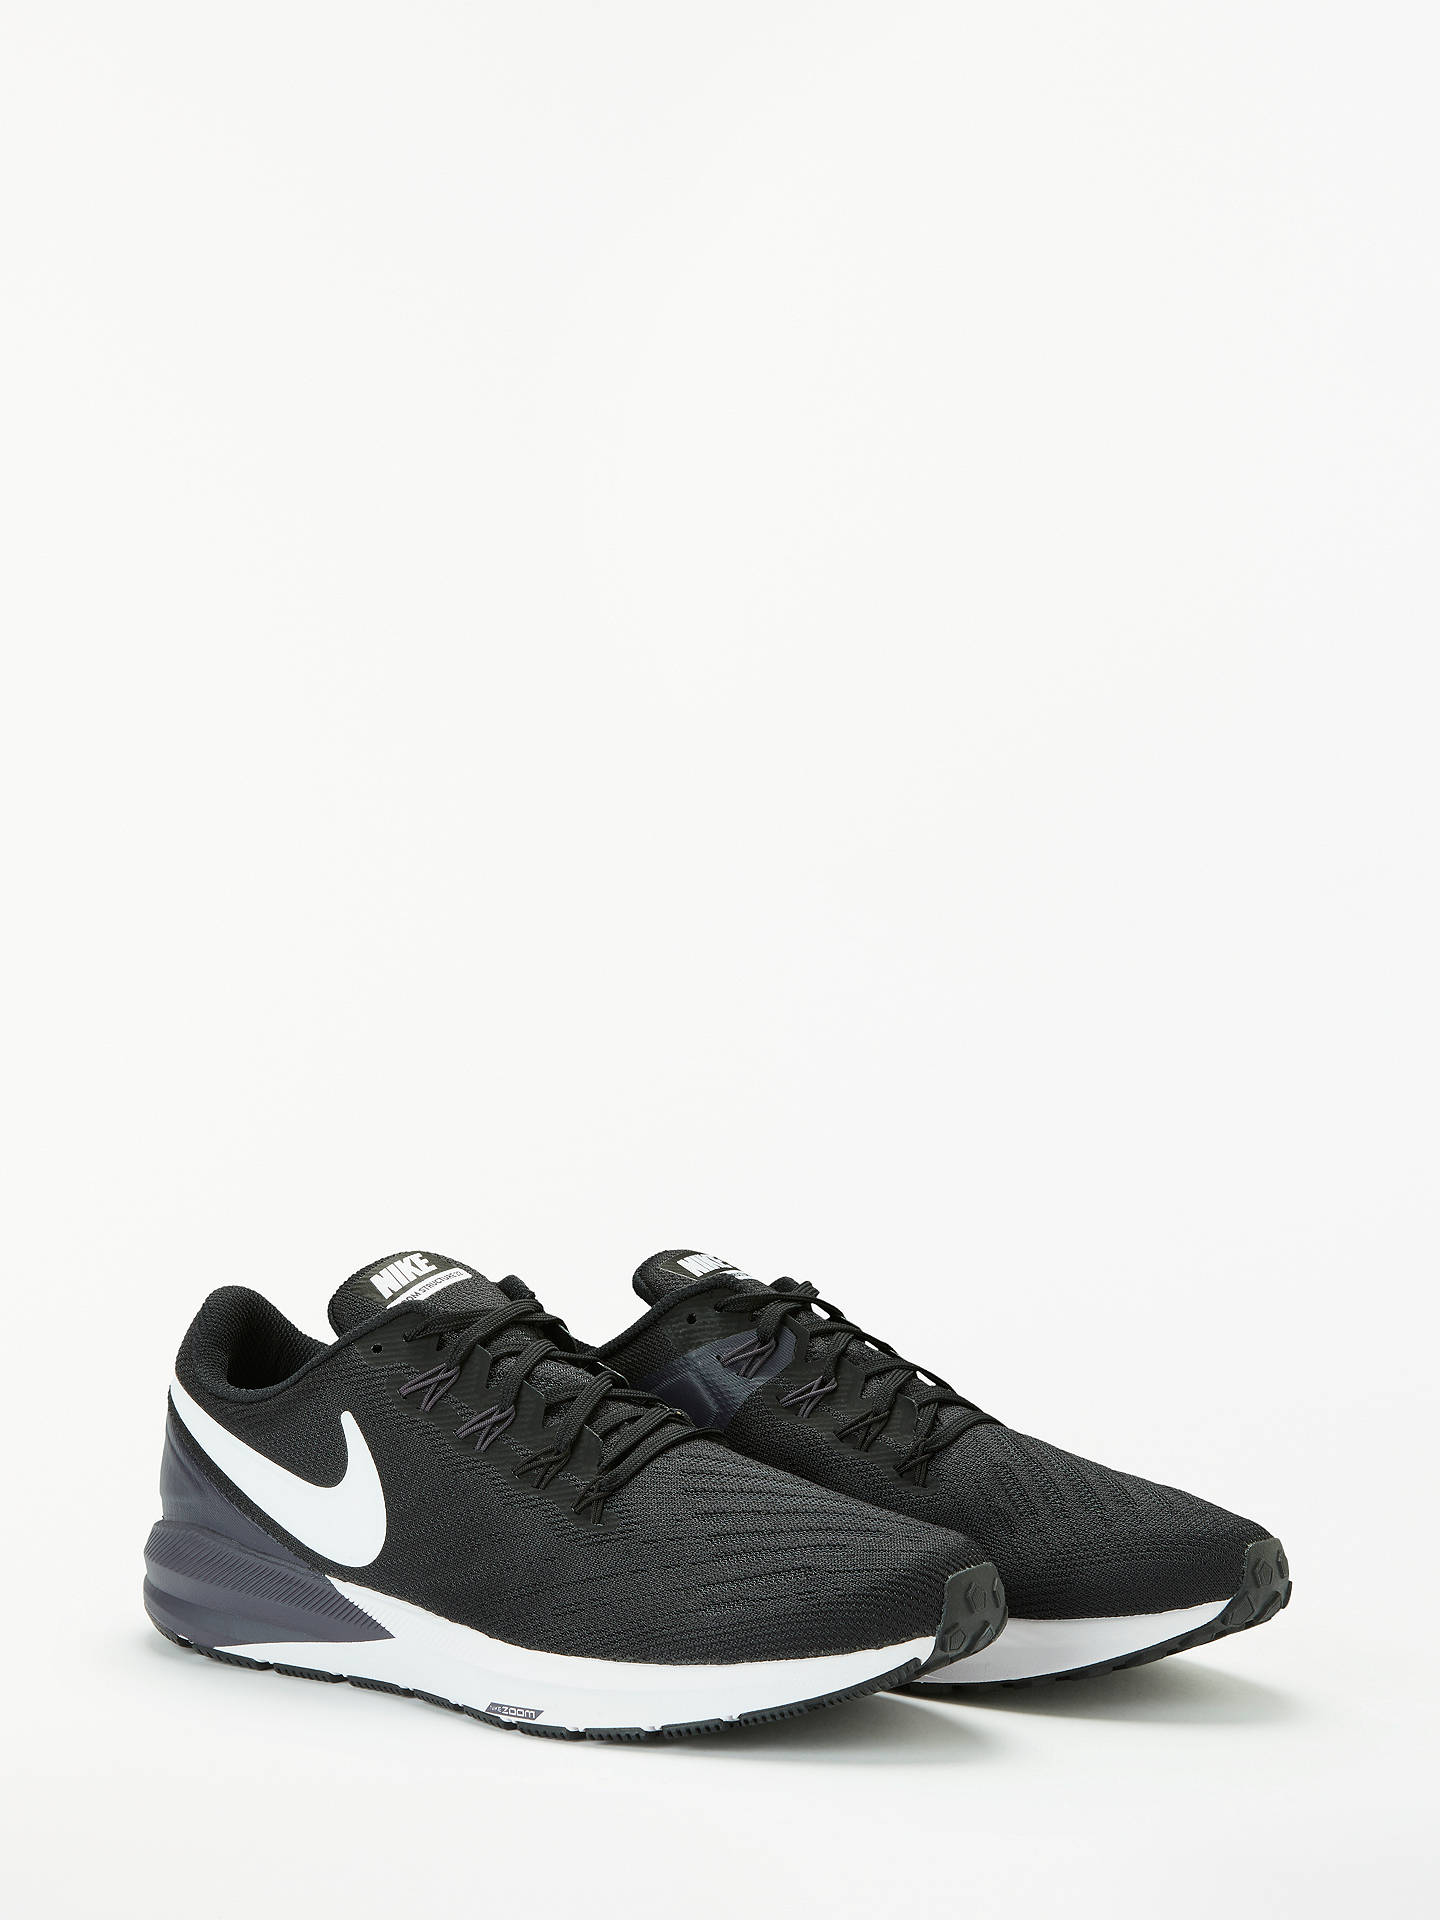 Nike Air Zoom Structure 22 Men's Running Shoes, BlackWhite Gridiron